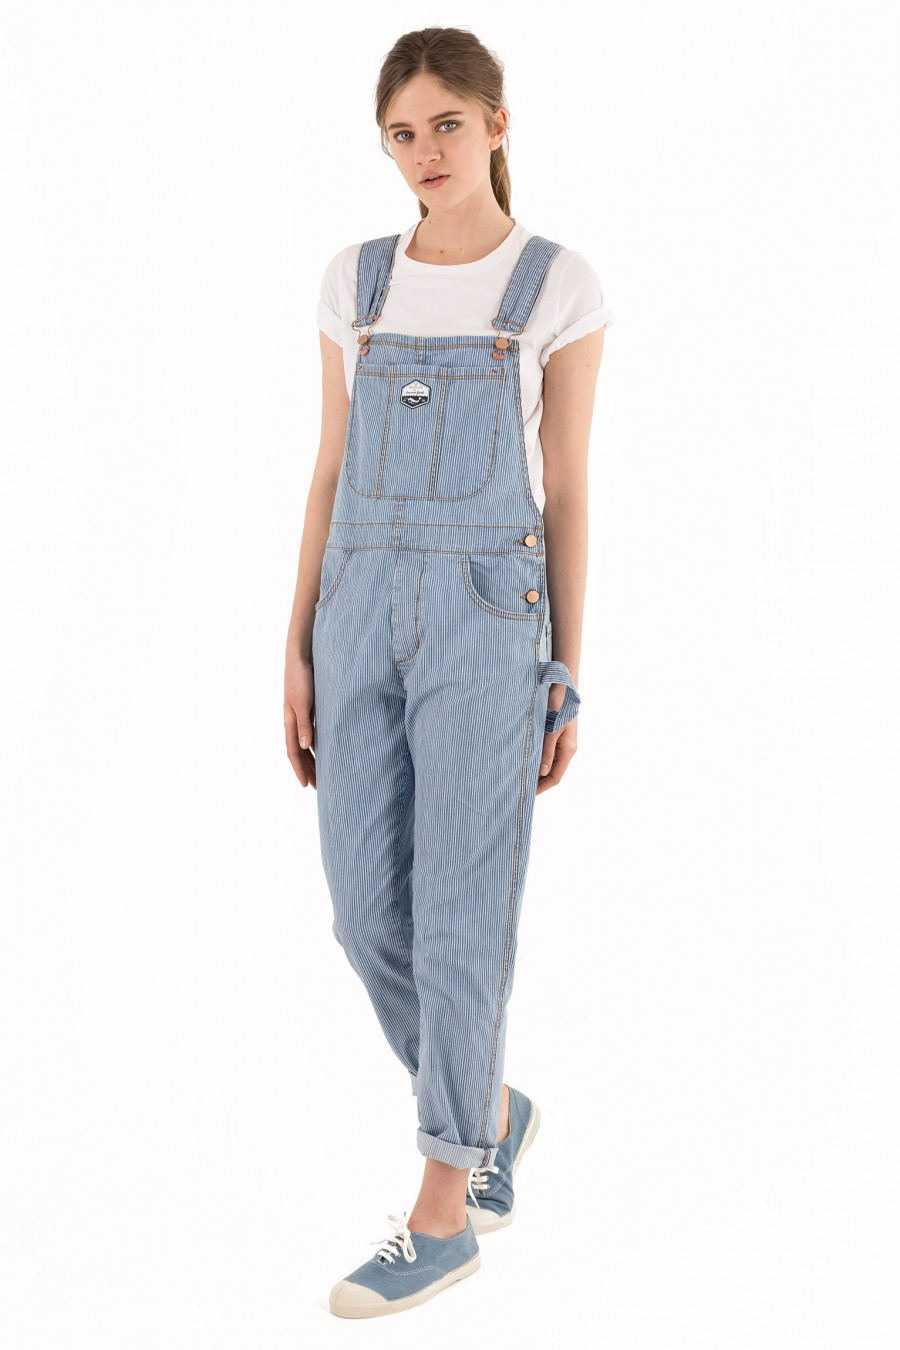 Tight fitting long overalls